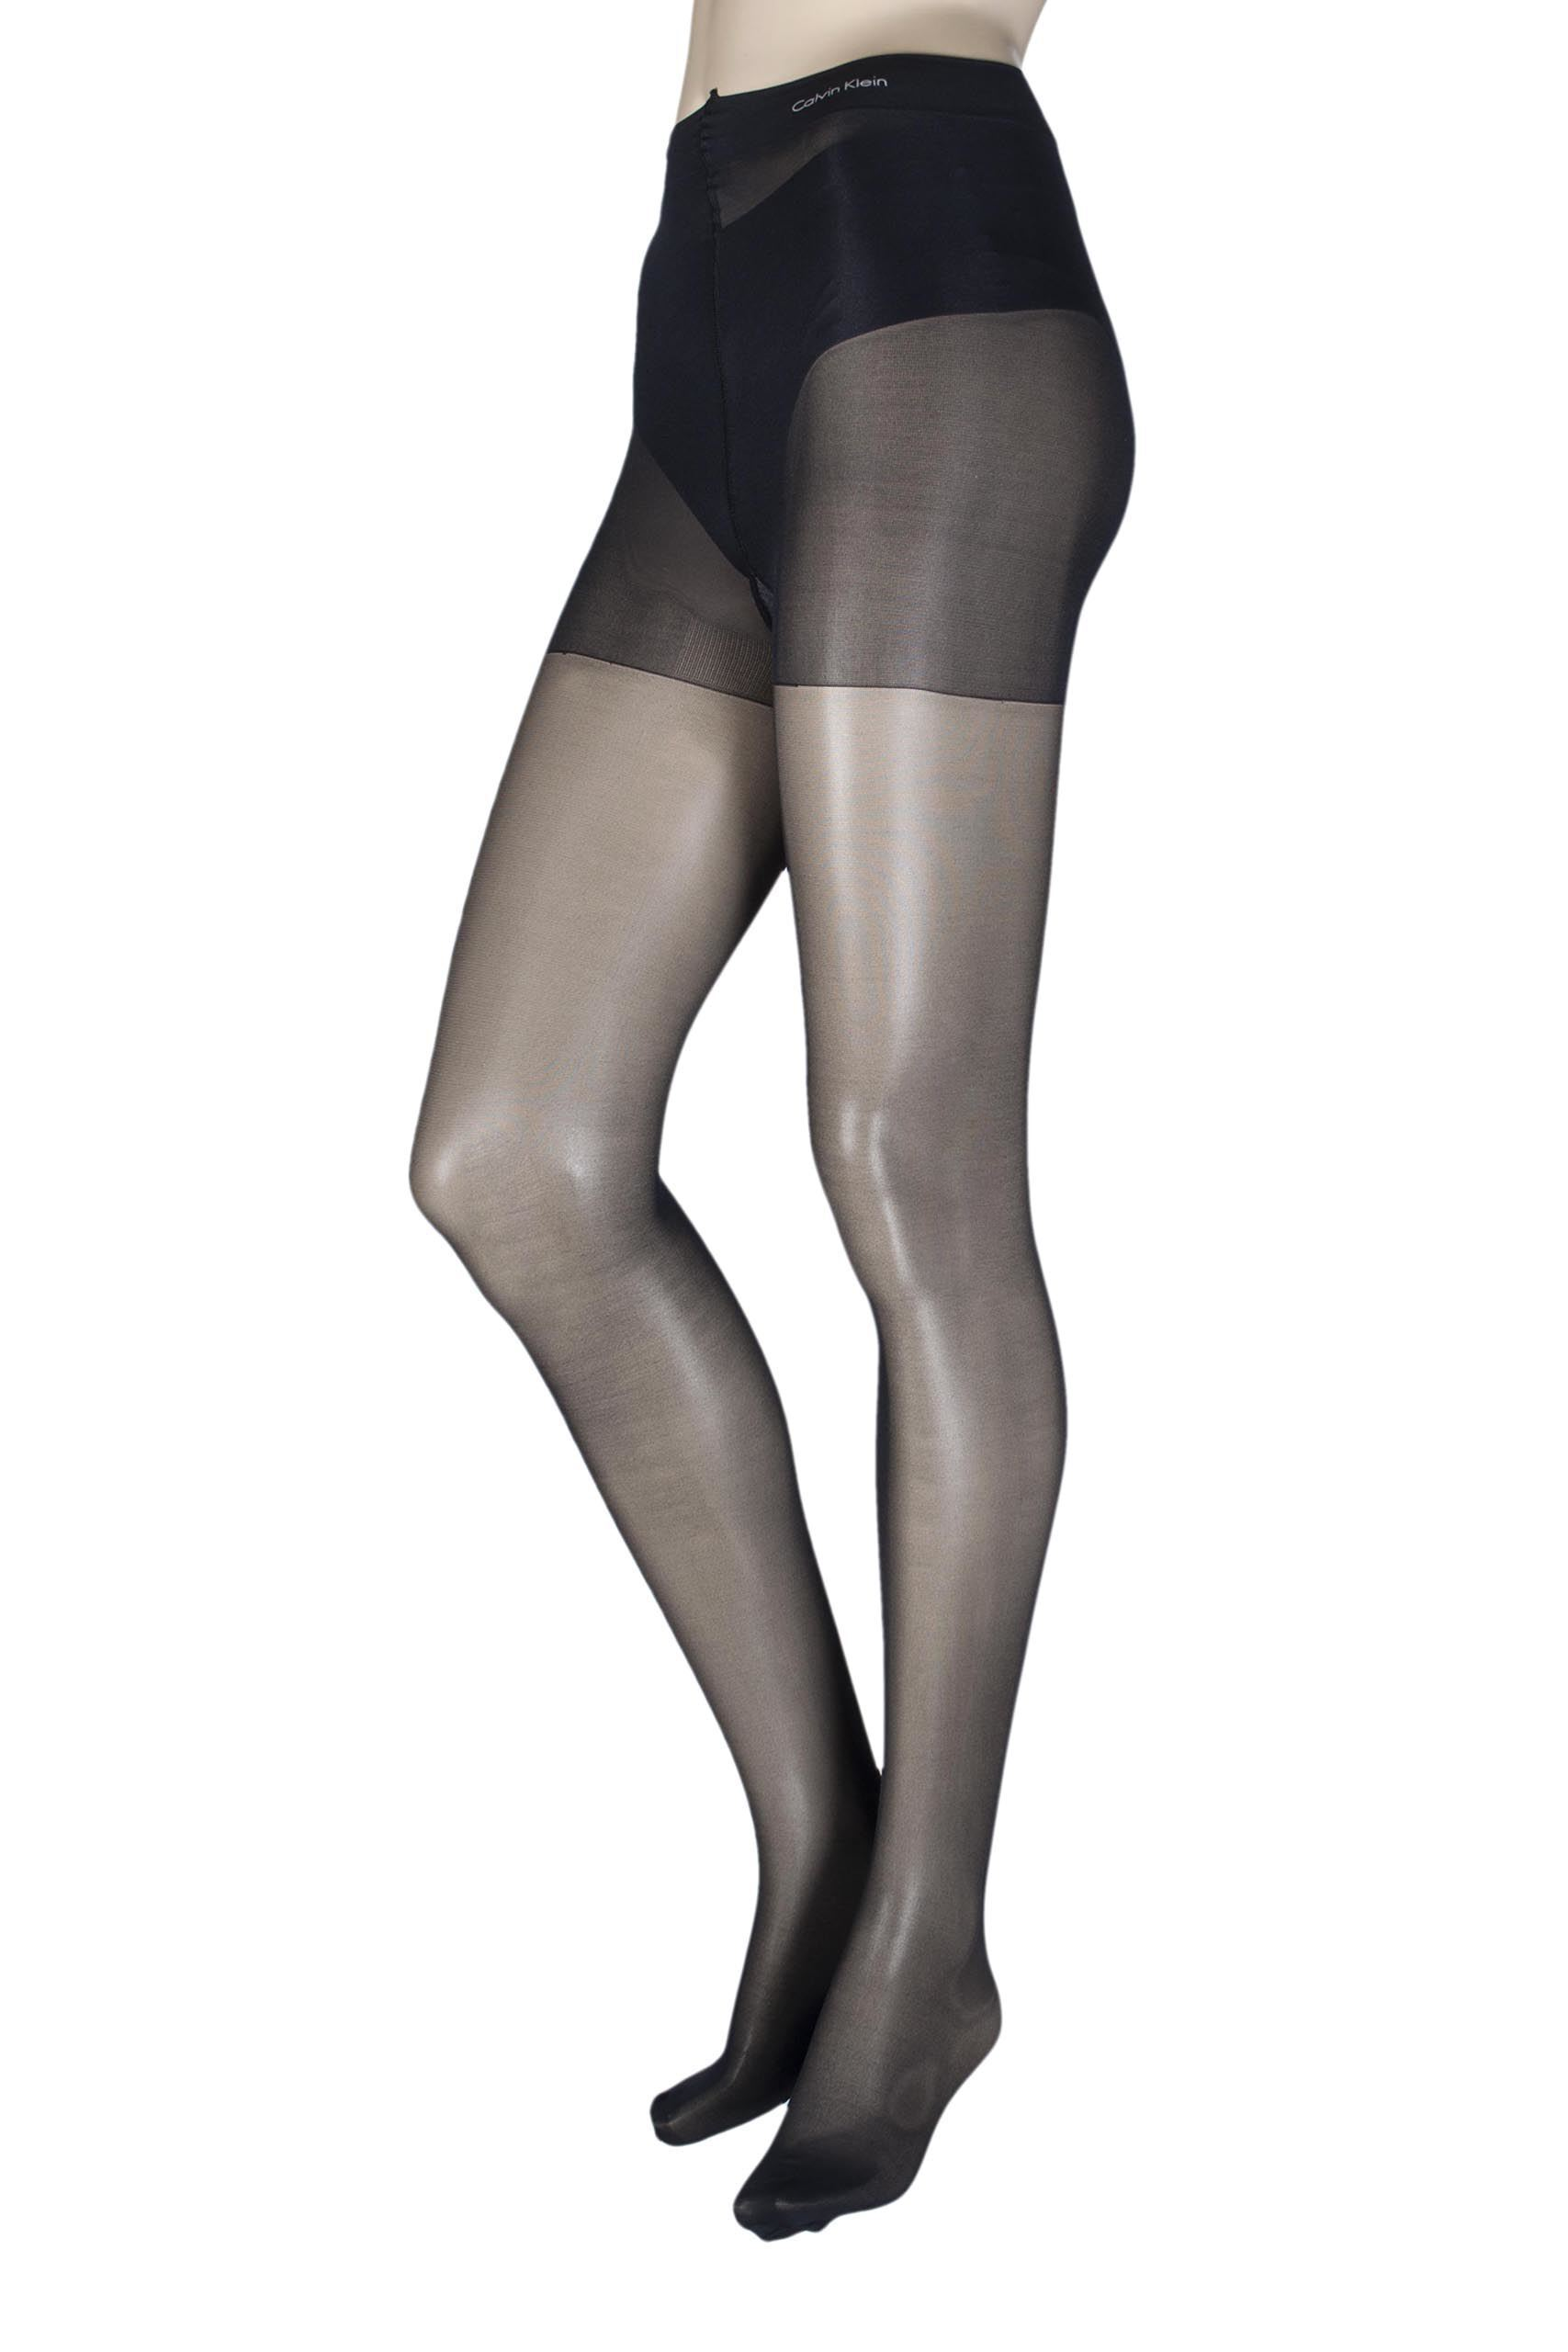 Image of 1 Pair Black Sheer Essentials Active Tights with Control Top Ladies Small - Calvin Klein